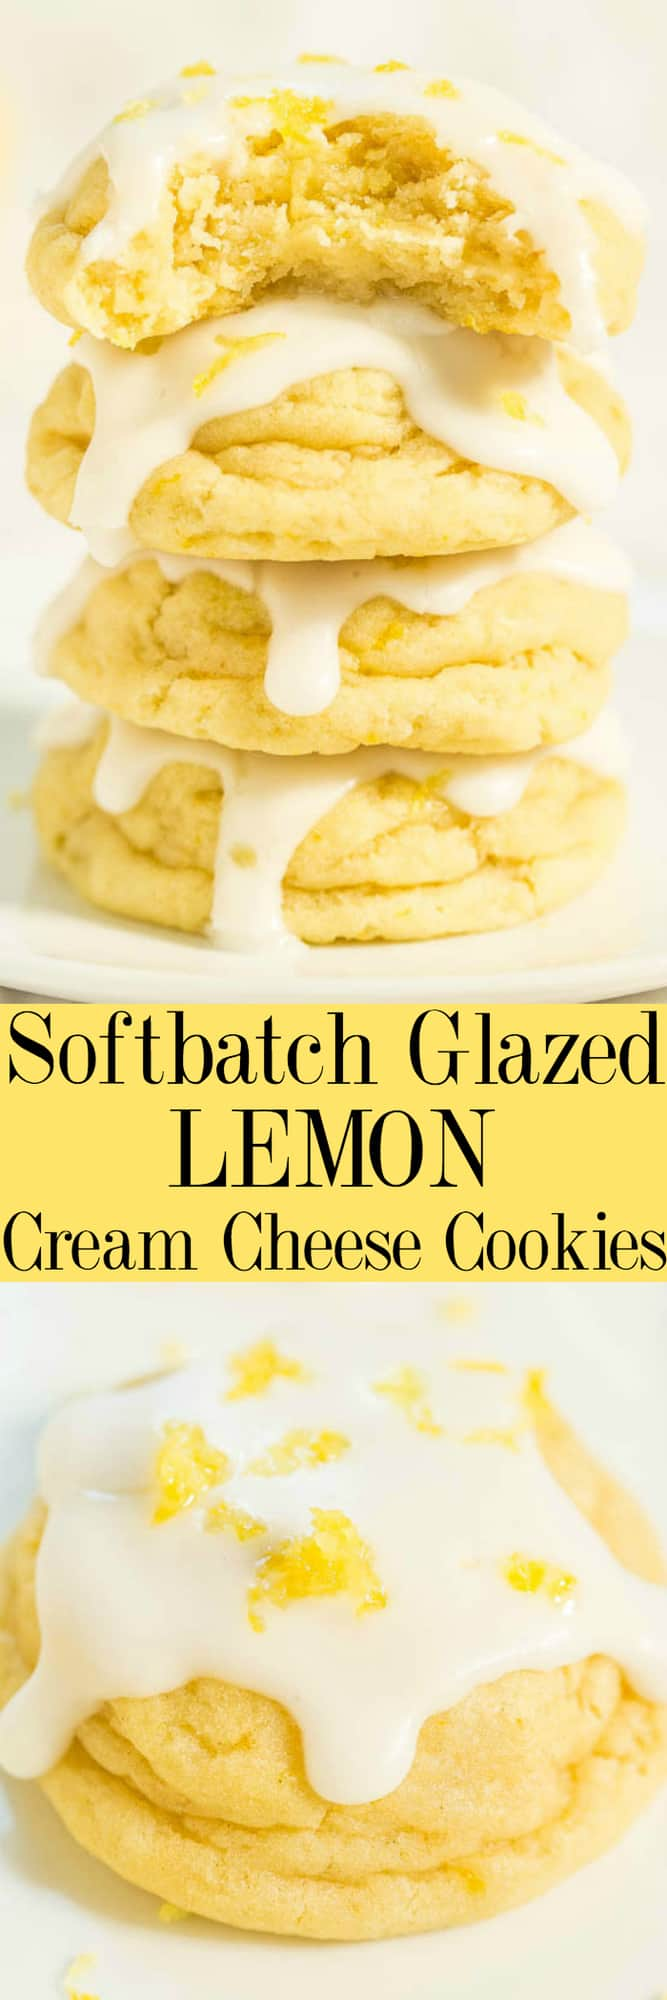 Softbatch Glazed Lemon Cream Cheese Cookies - Big, bold lemon flavor packed into super soft cookies thanks to the cream cheese!! Tangy-sweet perfection! Lemon lovers are going to adore these easy cookies!!